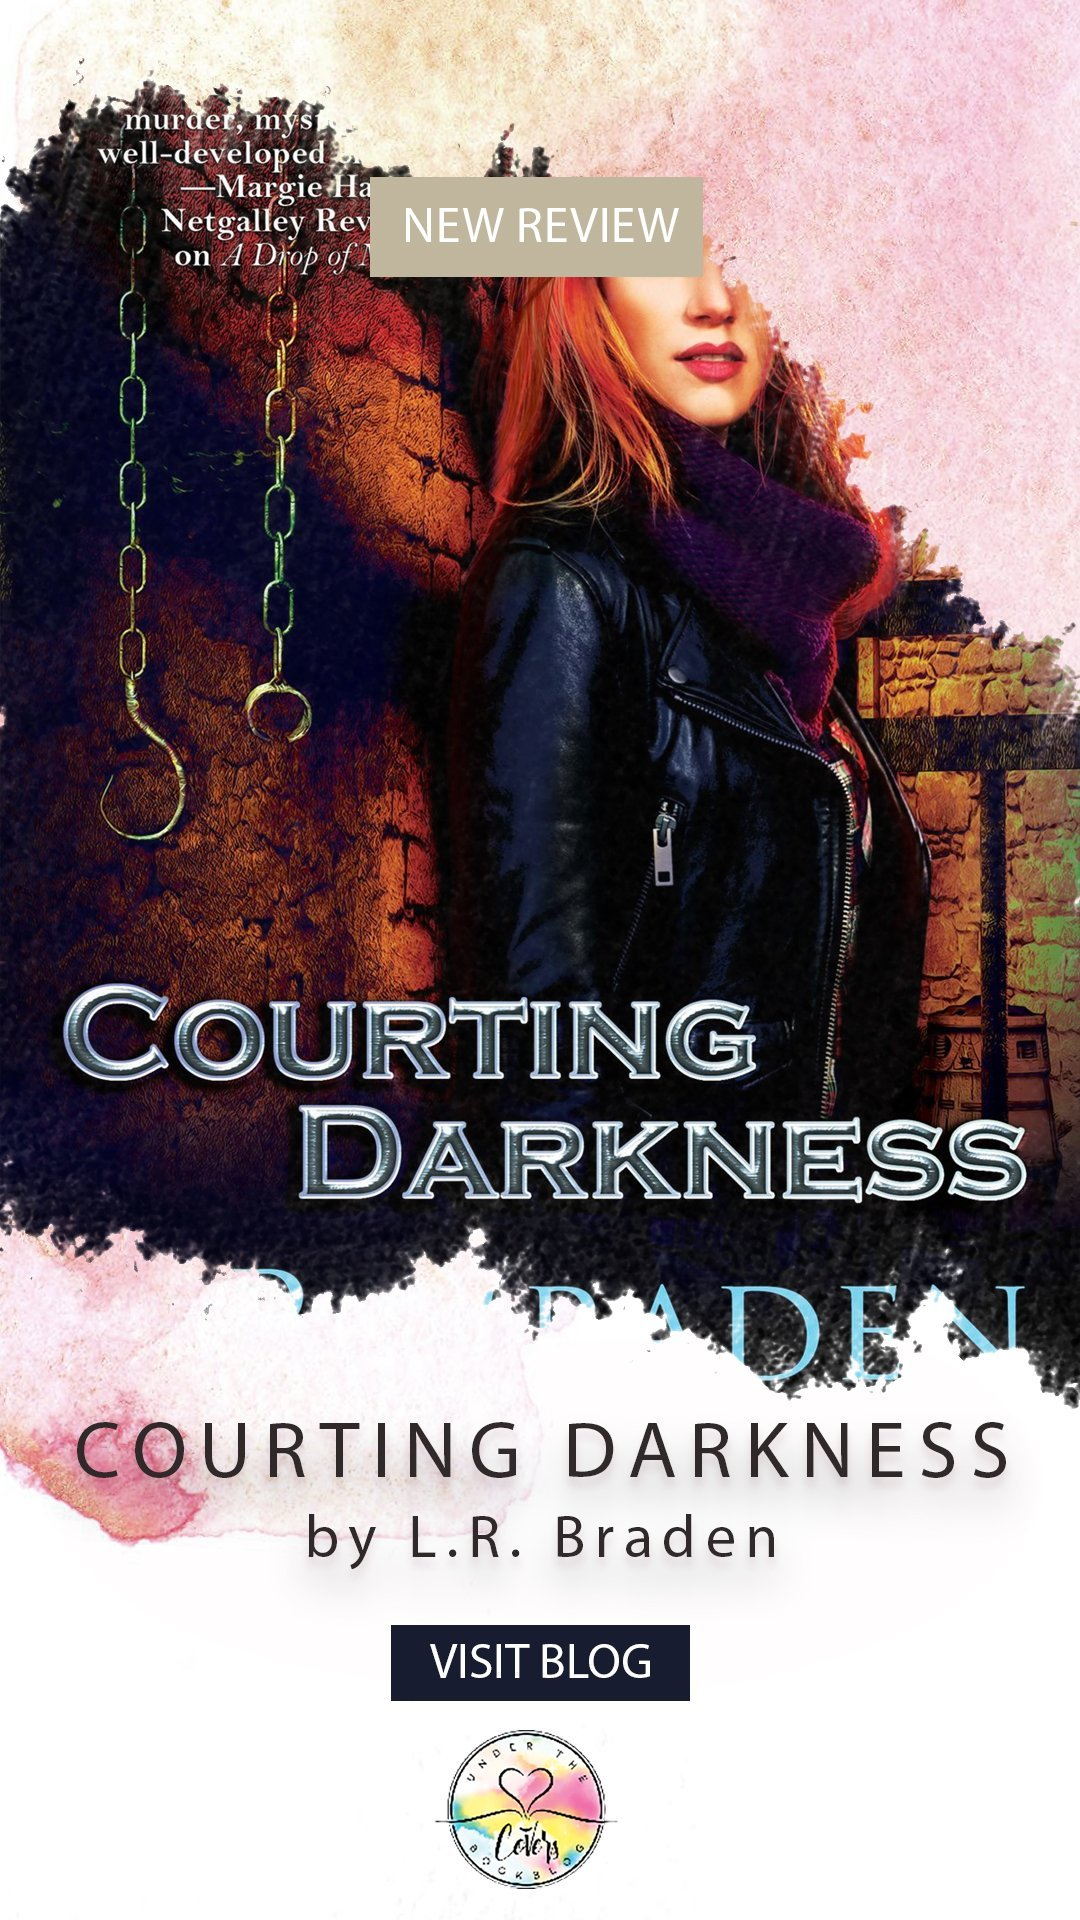 ARC Review: Courting Darkness by L.R. Braden